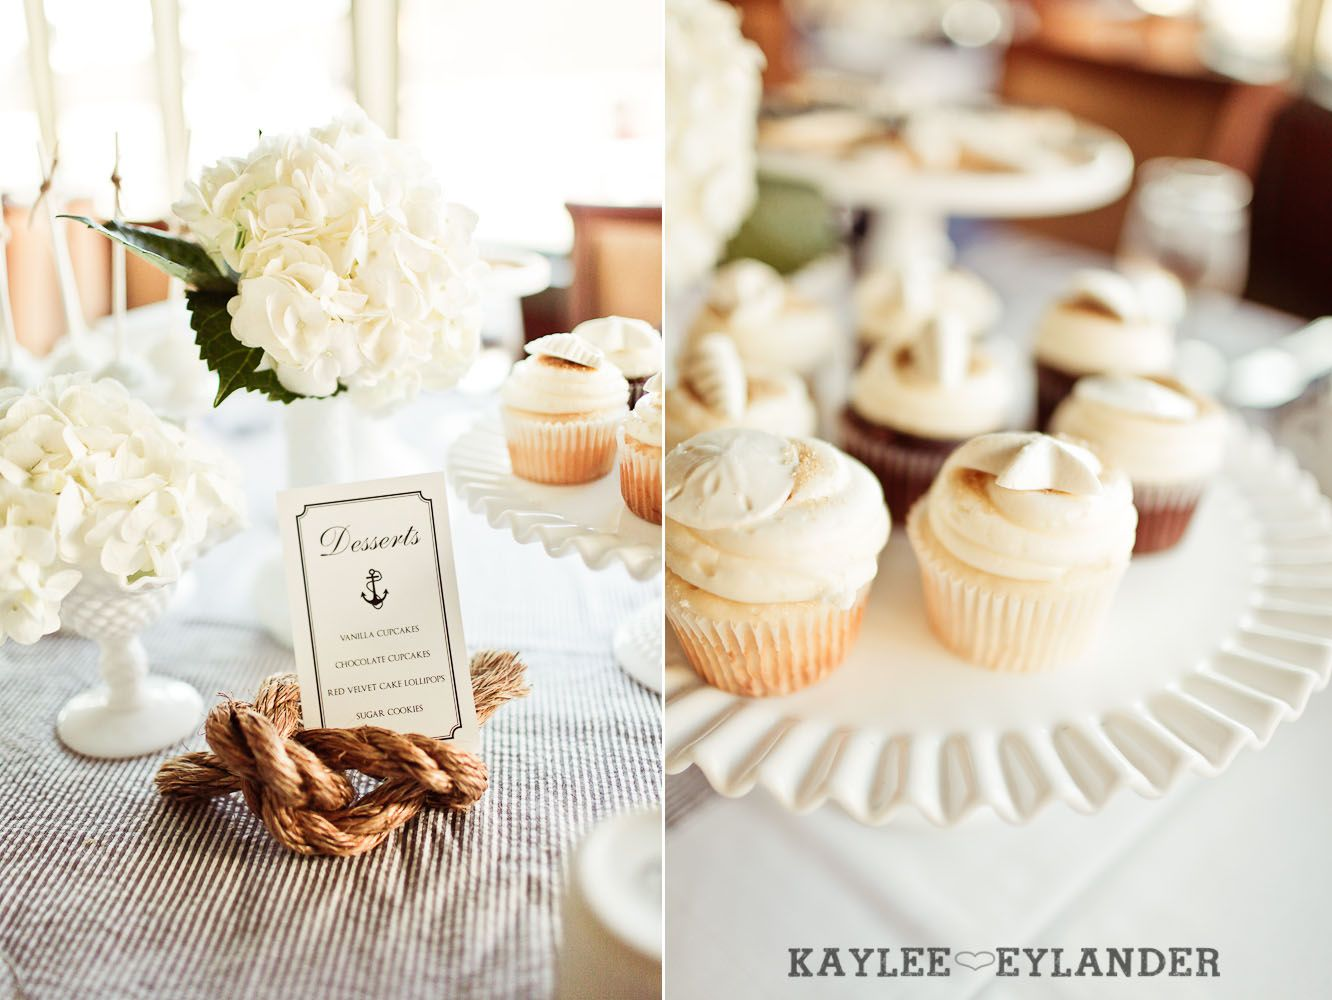 Nautical desserts and table numbers | Seattle Royal Argosy Cruise ...